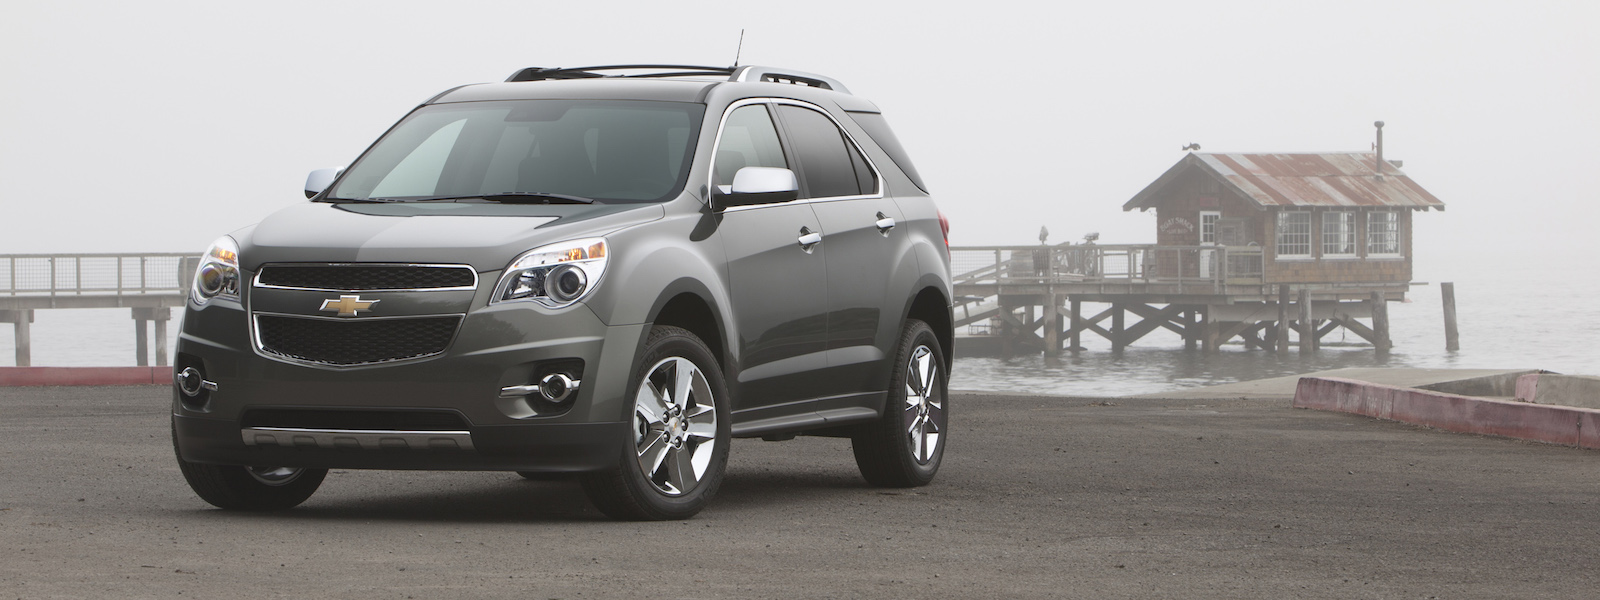 Chevy Equinox Design